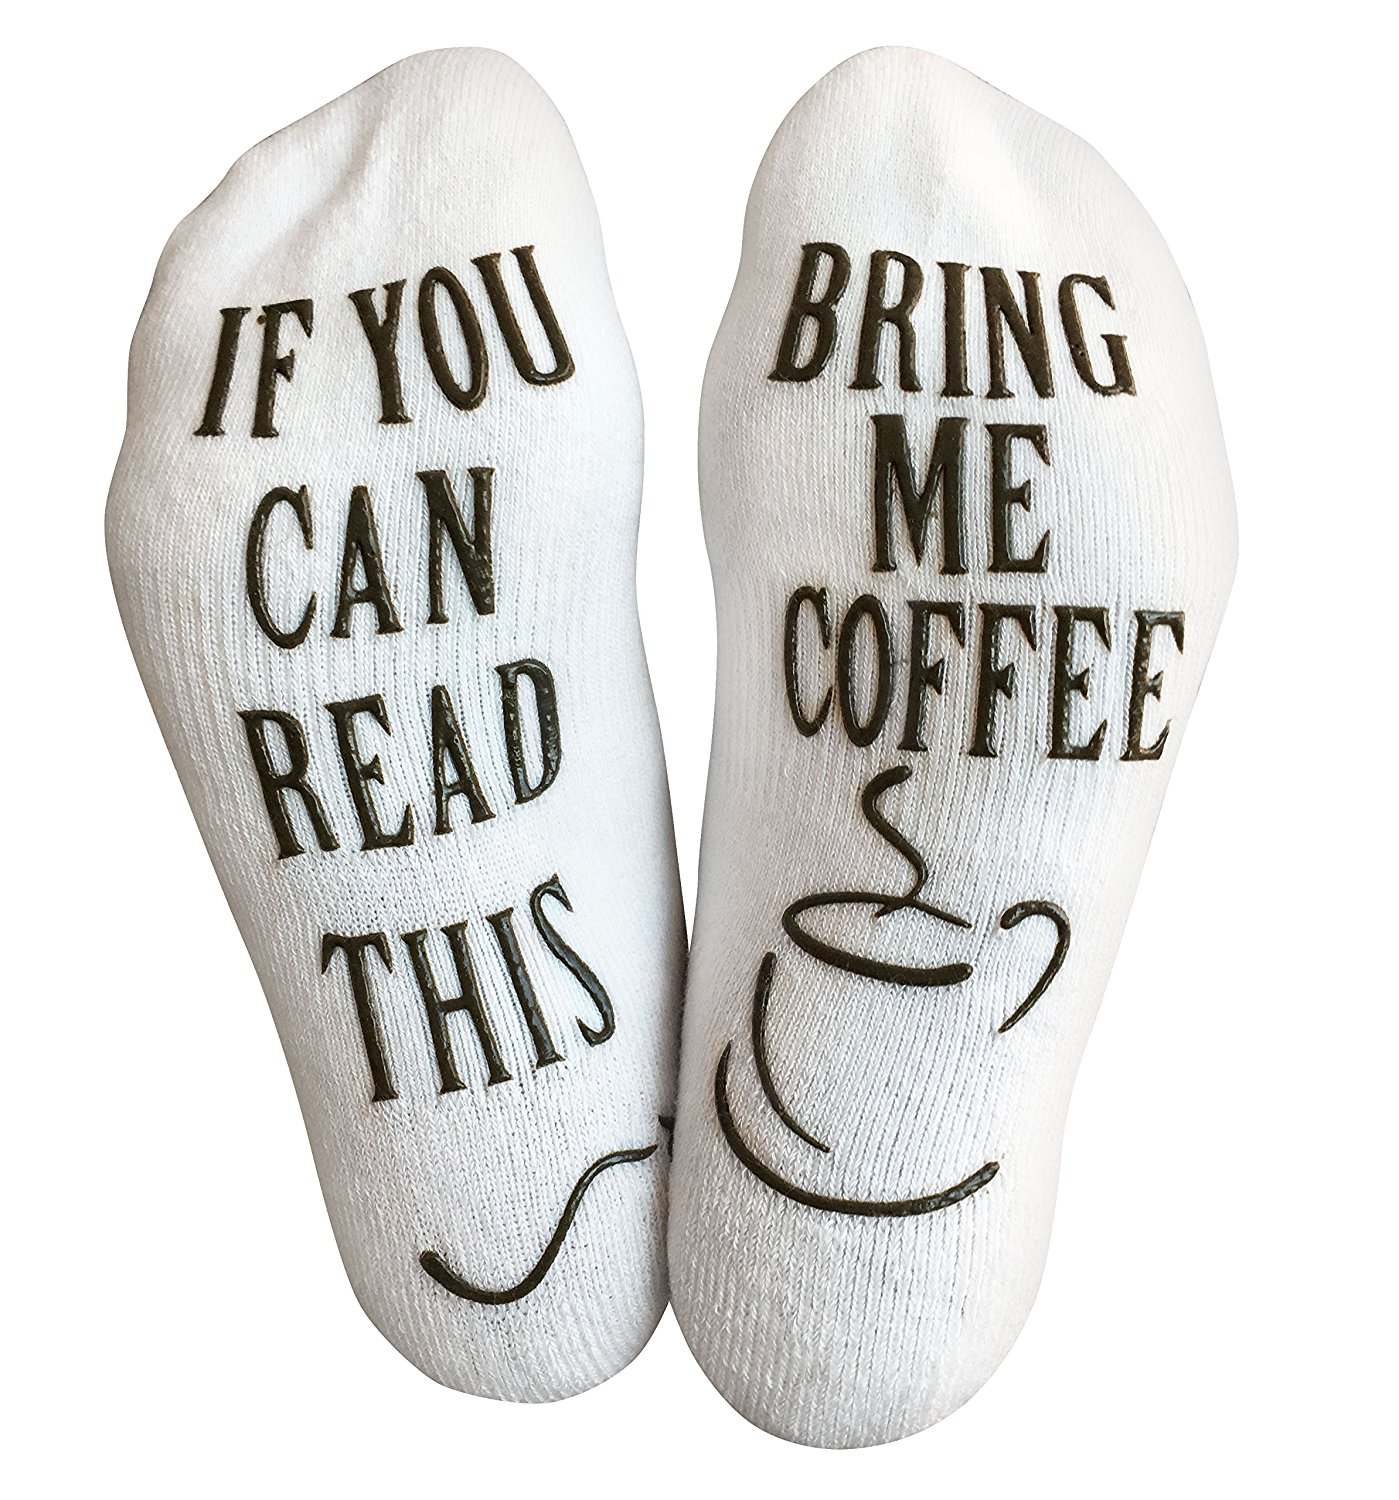 20 Luxury Cotton Bring Me Coffee Funny Socks